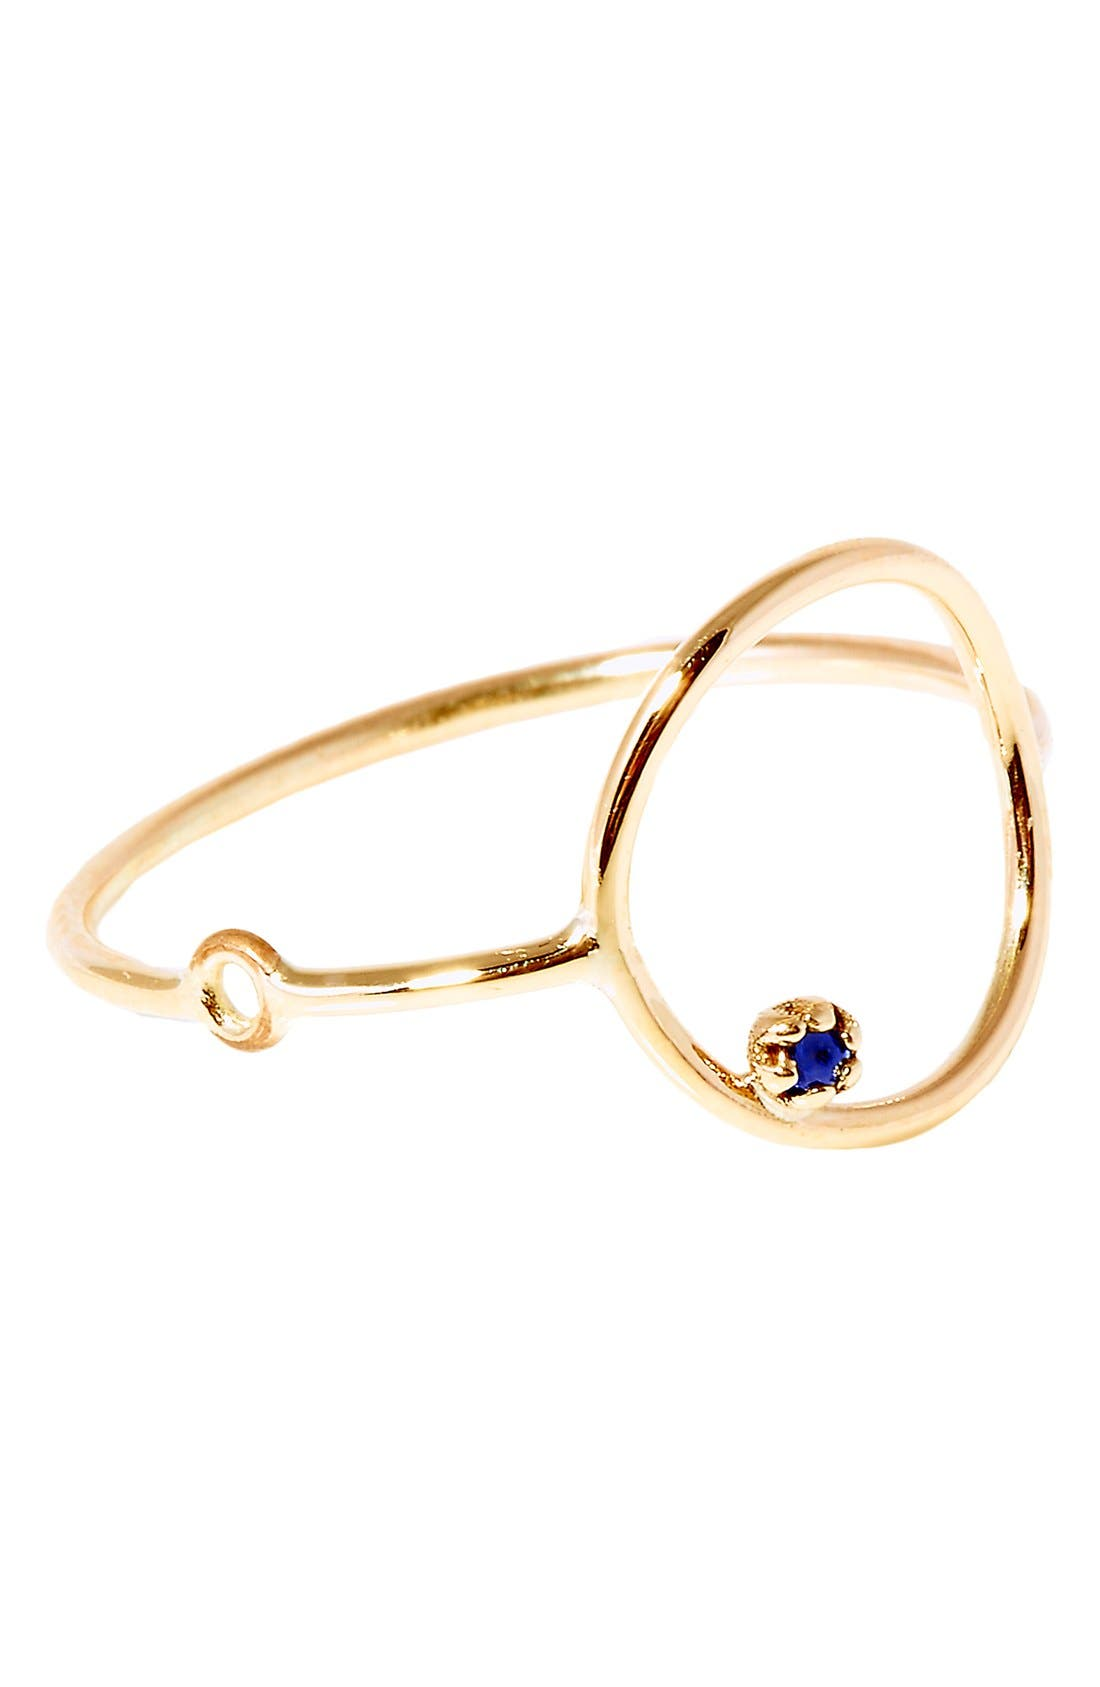 'Stone Bubble' Gold & Sapphire Ring,                         Main,                         color, Yellow Gold